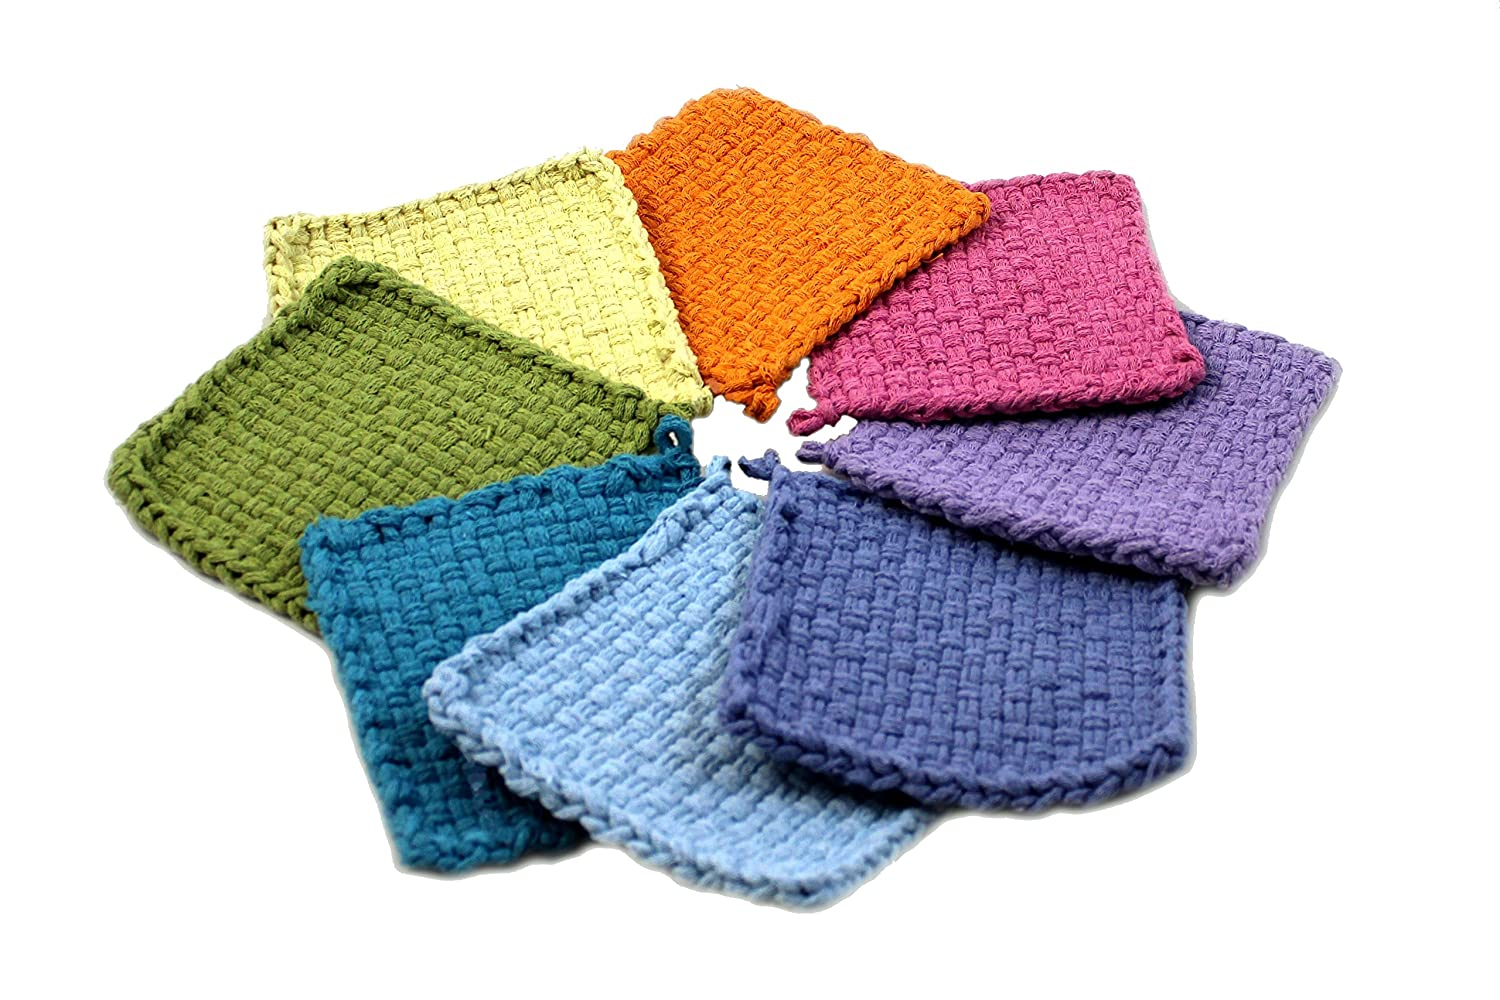 Carnation Makes 2 Potholders Harrisville Designs Toys F551C Harrisville Designs Traditional 7 Cotton Loops